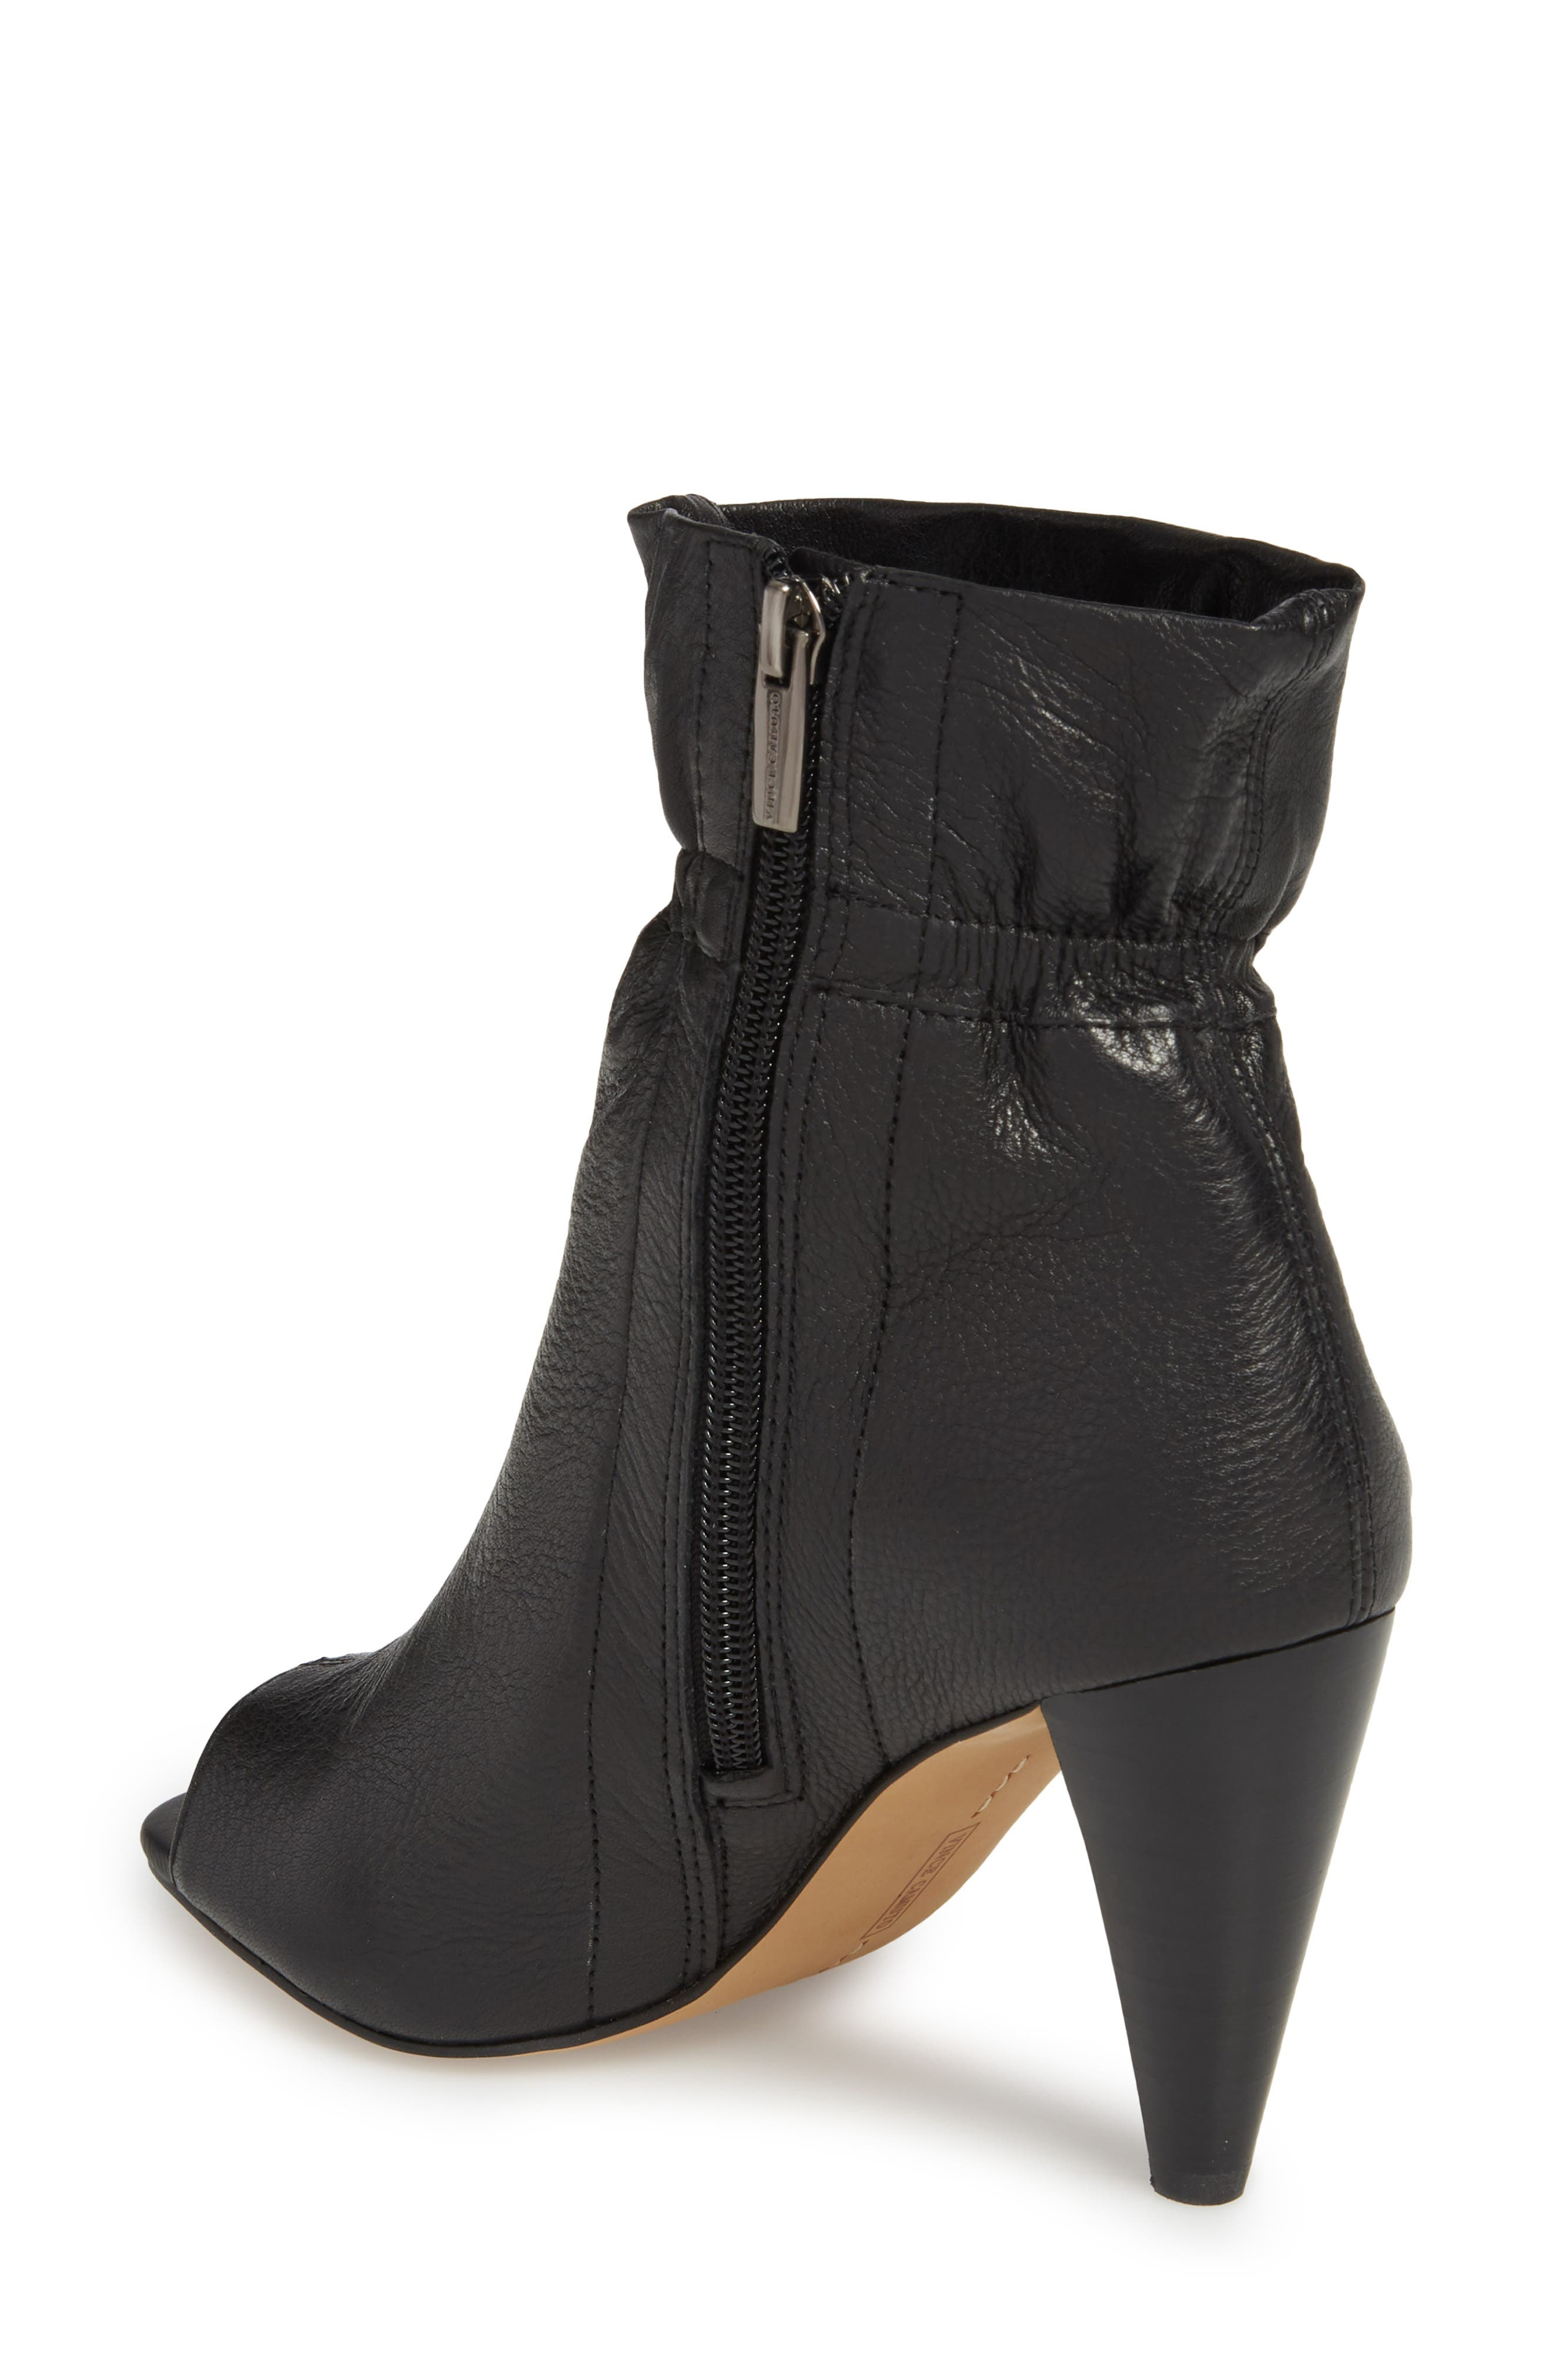 Addiena Bootie,                             Alternate thumbnail 2, color,                             BLACK LEATHER